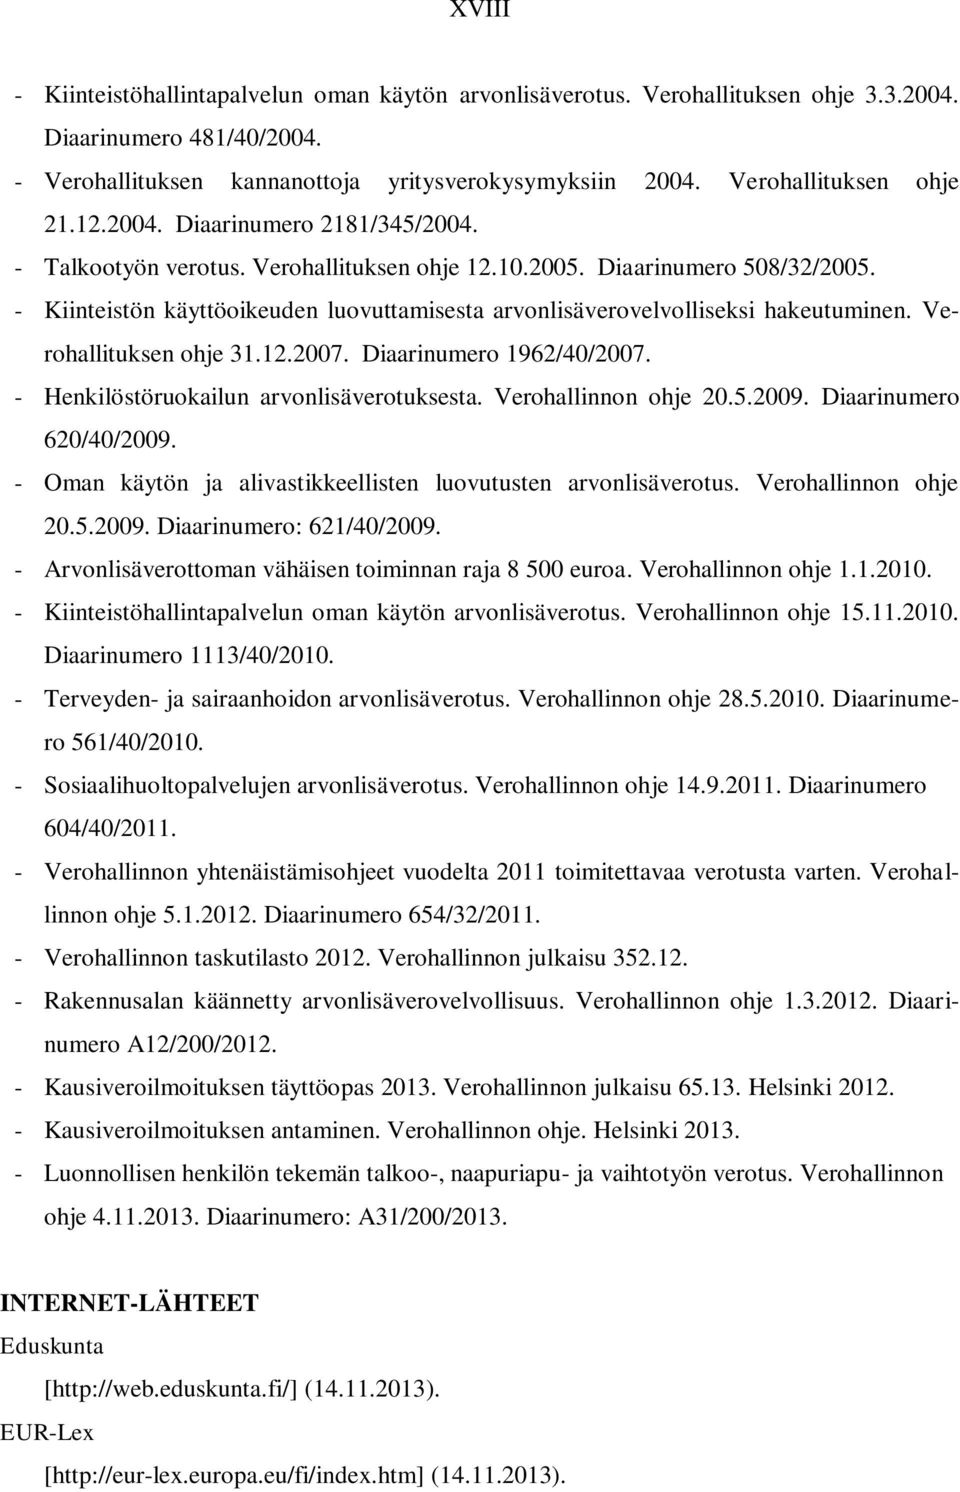 Dating website Group päivä määrät